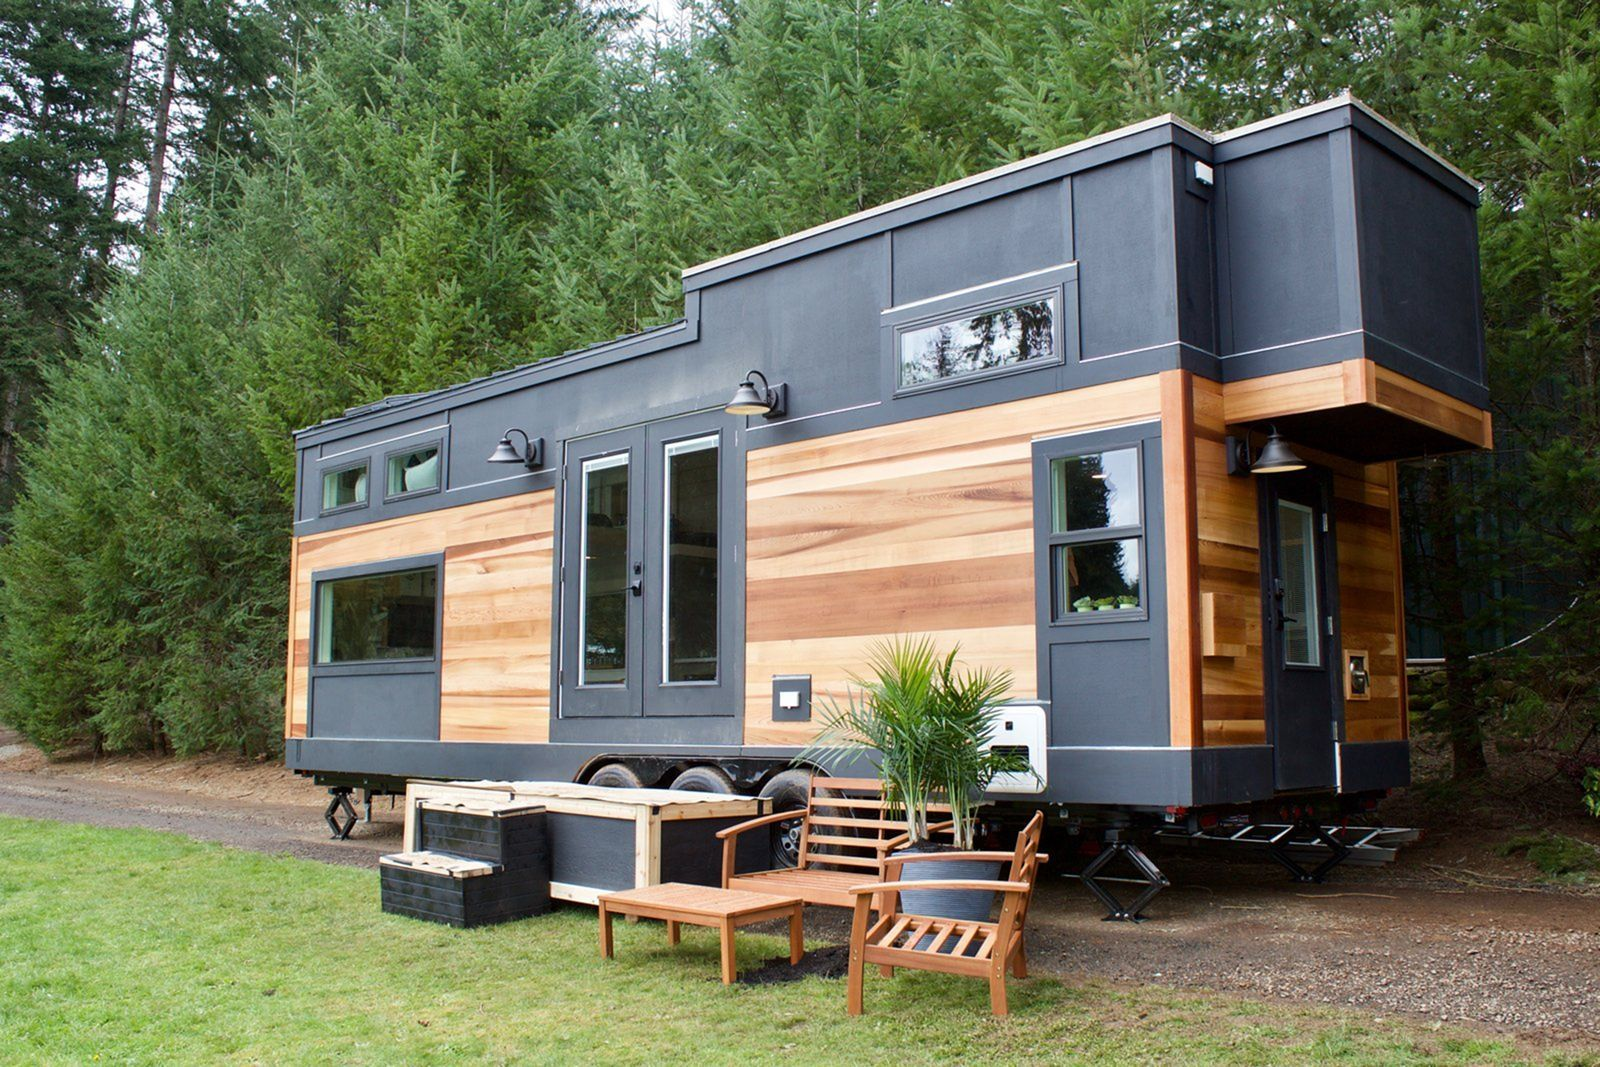 20 Unique Multi Storey Tiny House Designs For Your Awesome House Tiny House Exterior Tiny Mobile House Tiny House Nation